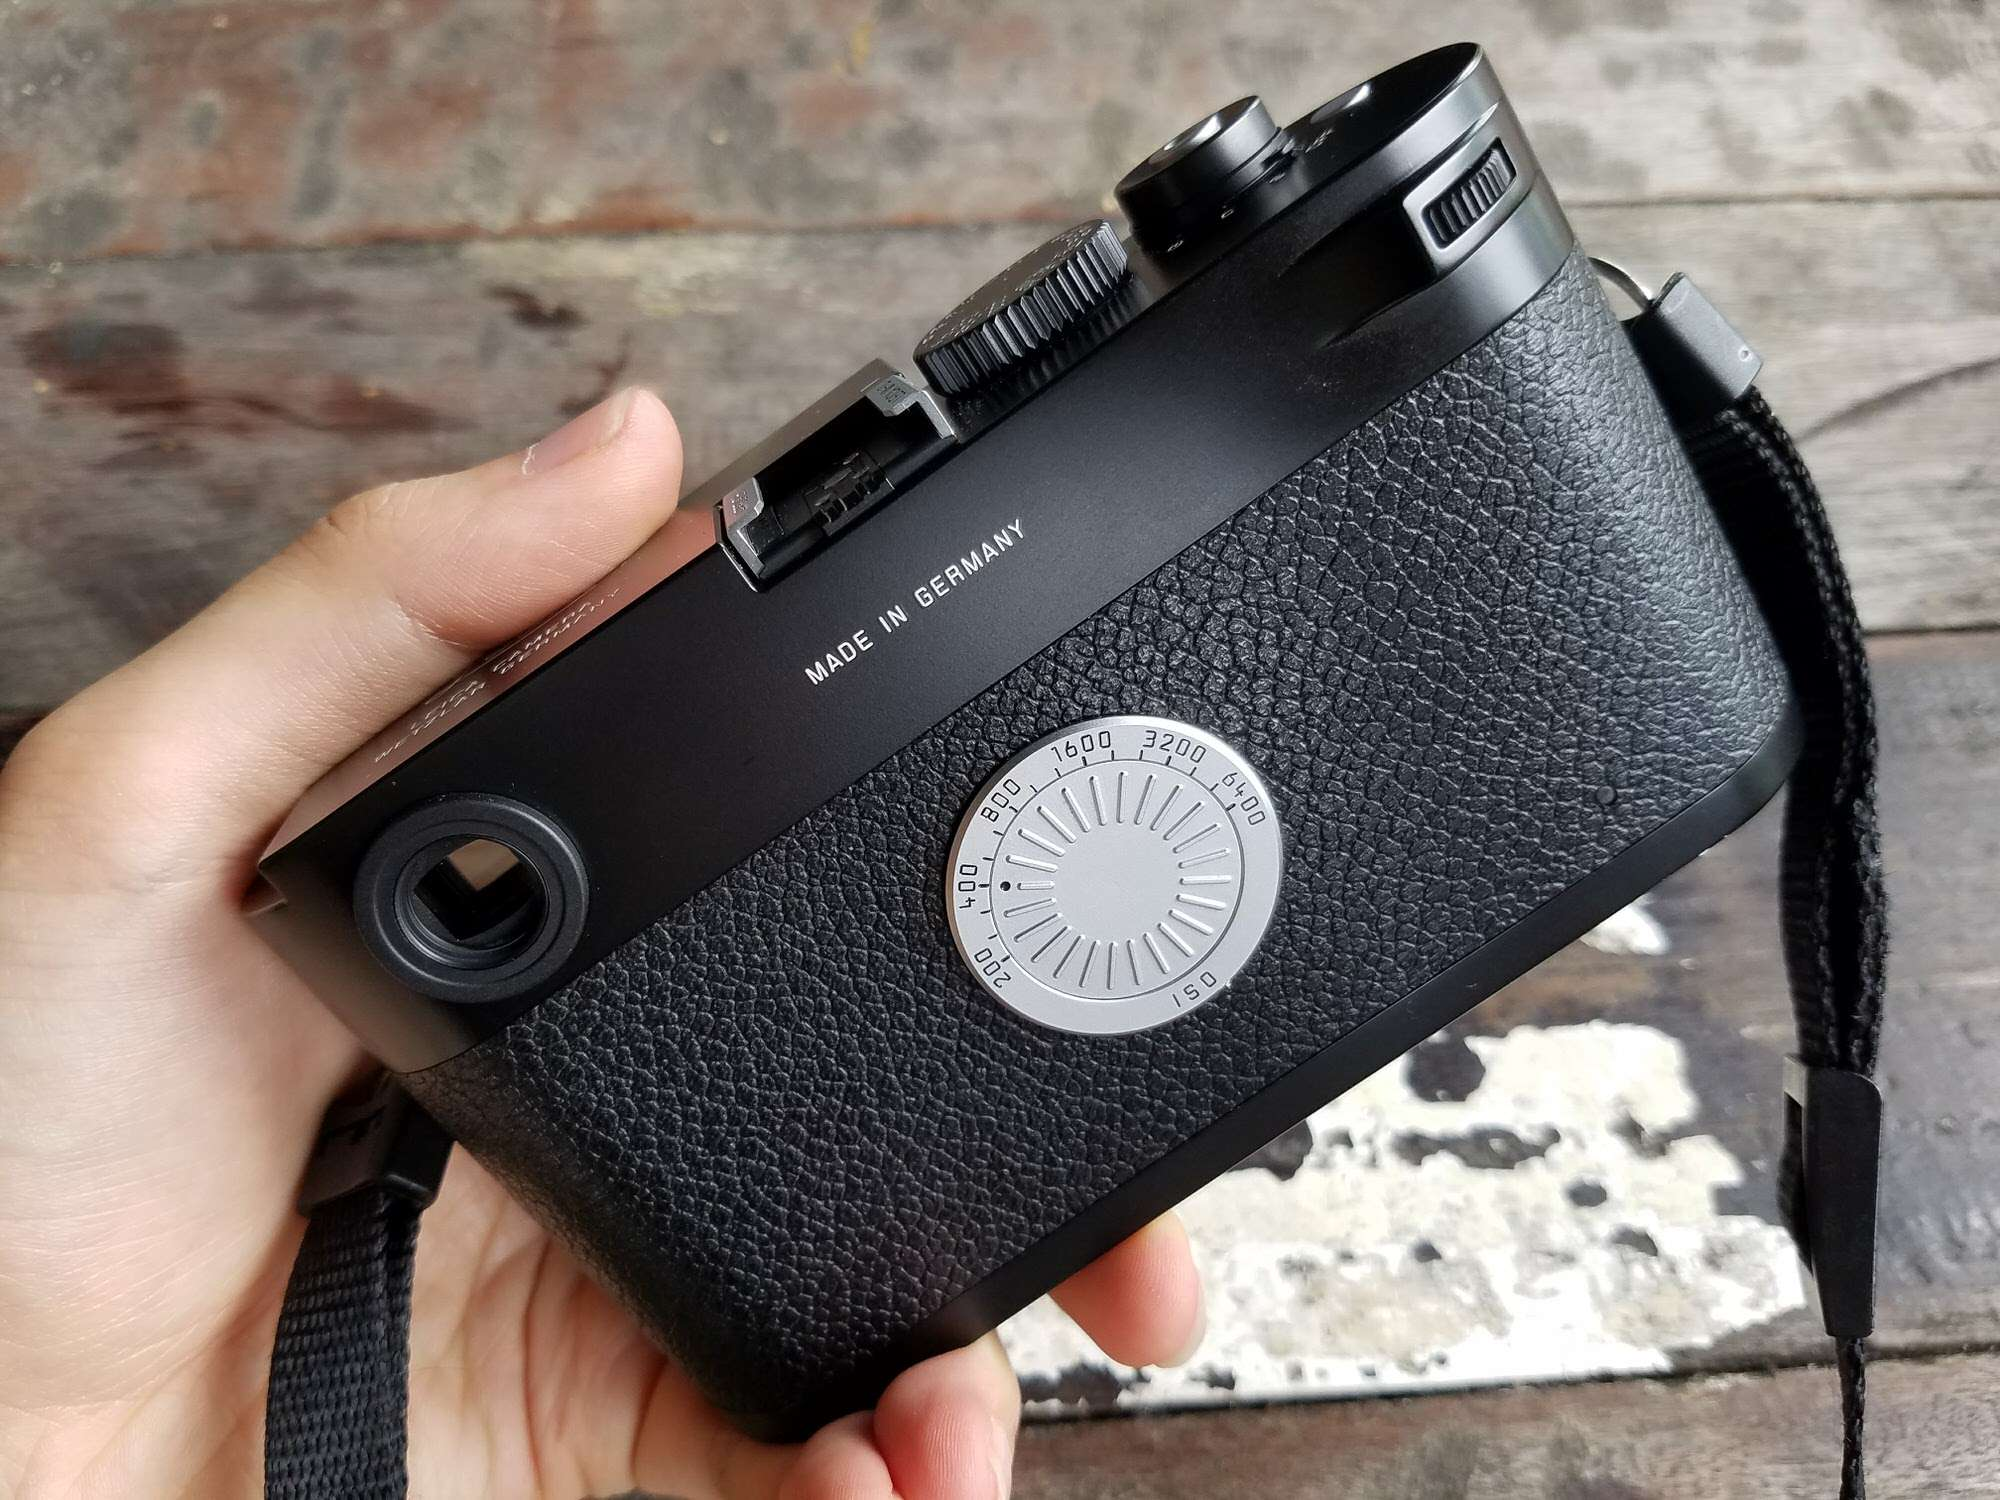 Back of the Leica M-D